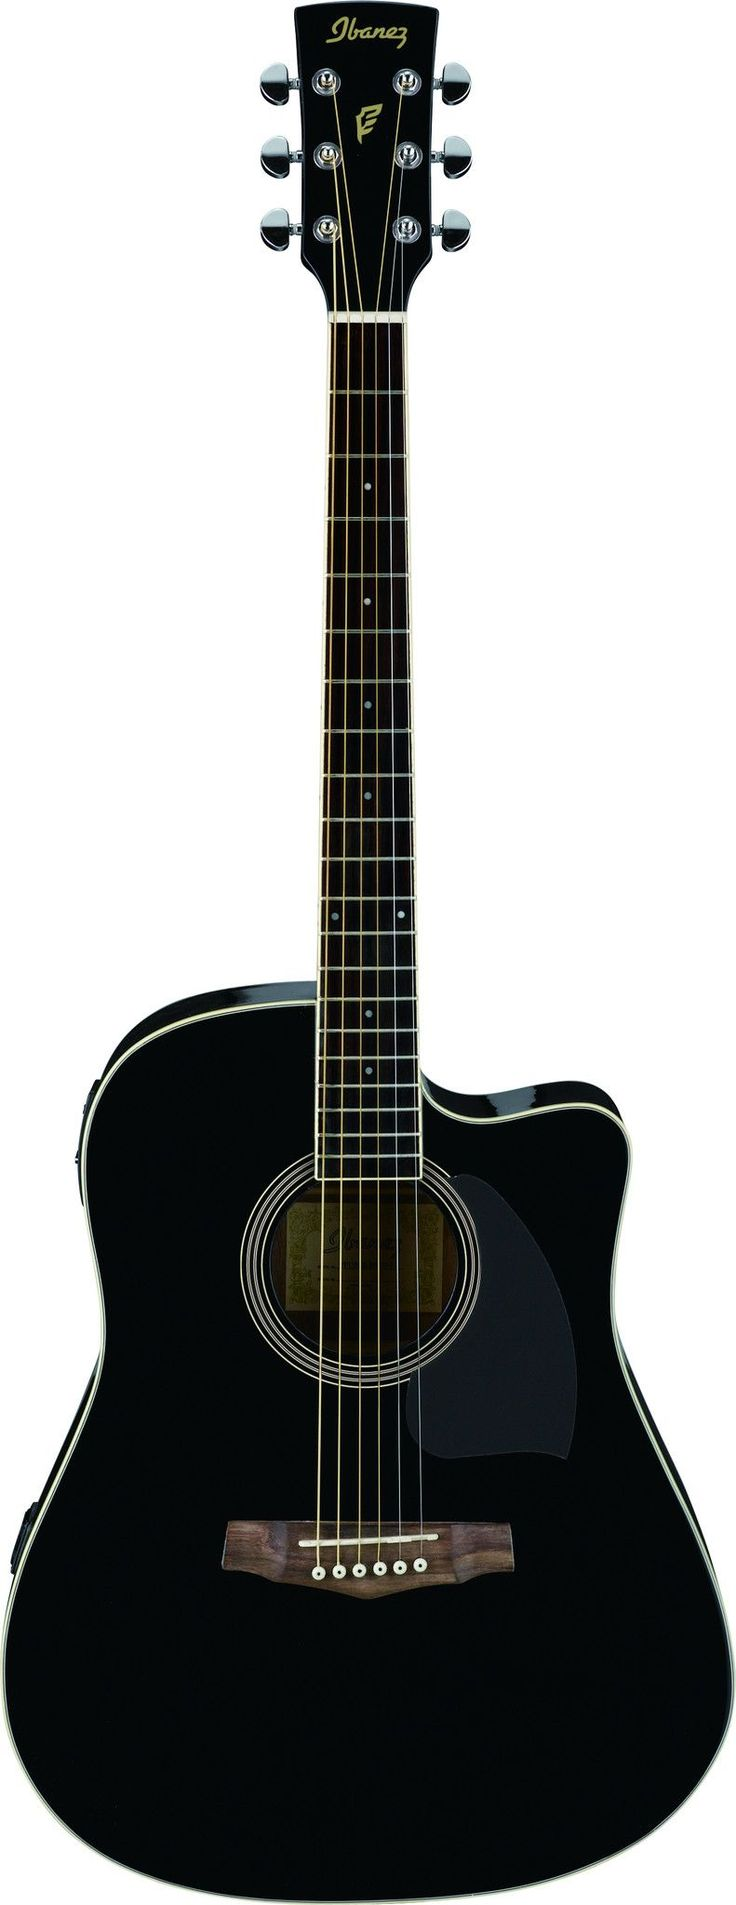 The PF series of acoustic guitars from Ibanez boast a number of professional features normally found on high-end acoustics, and backed by the Ibanez name and quality. The most notable features of the